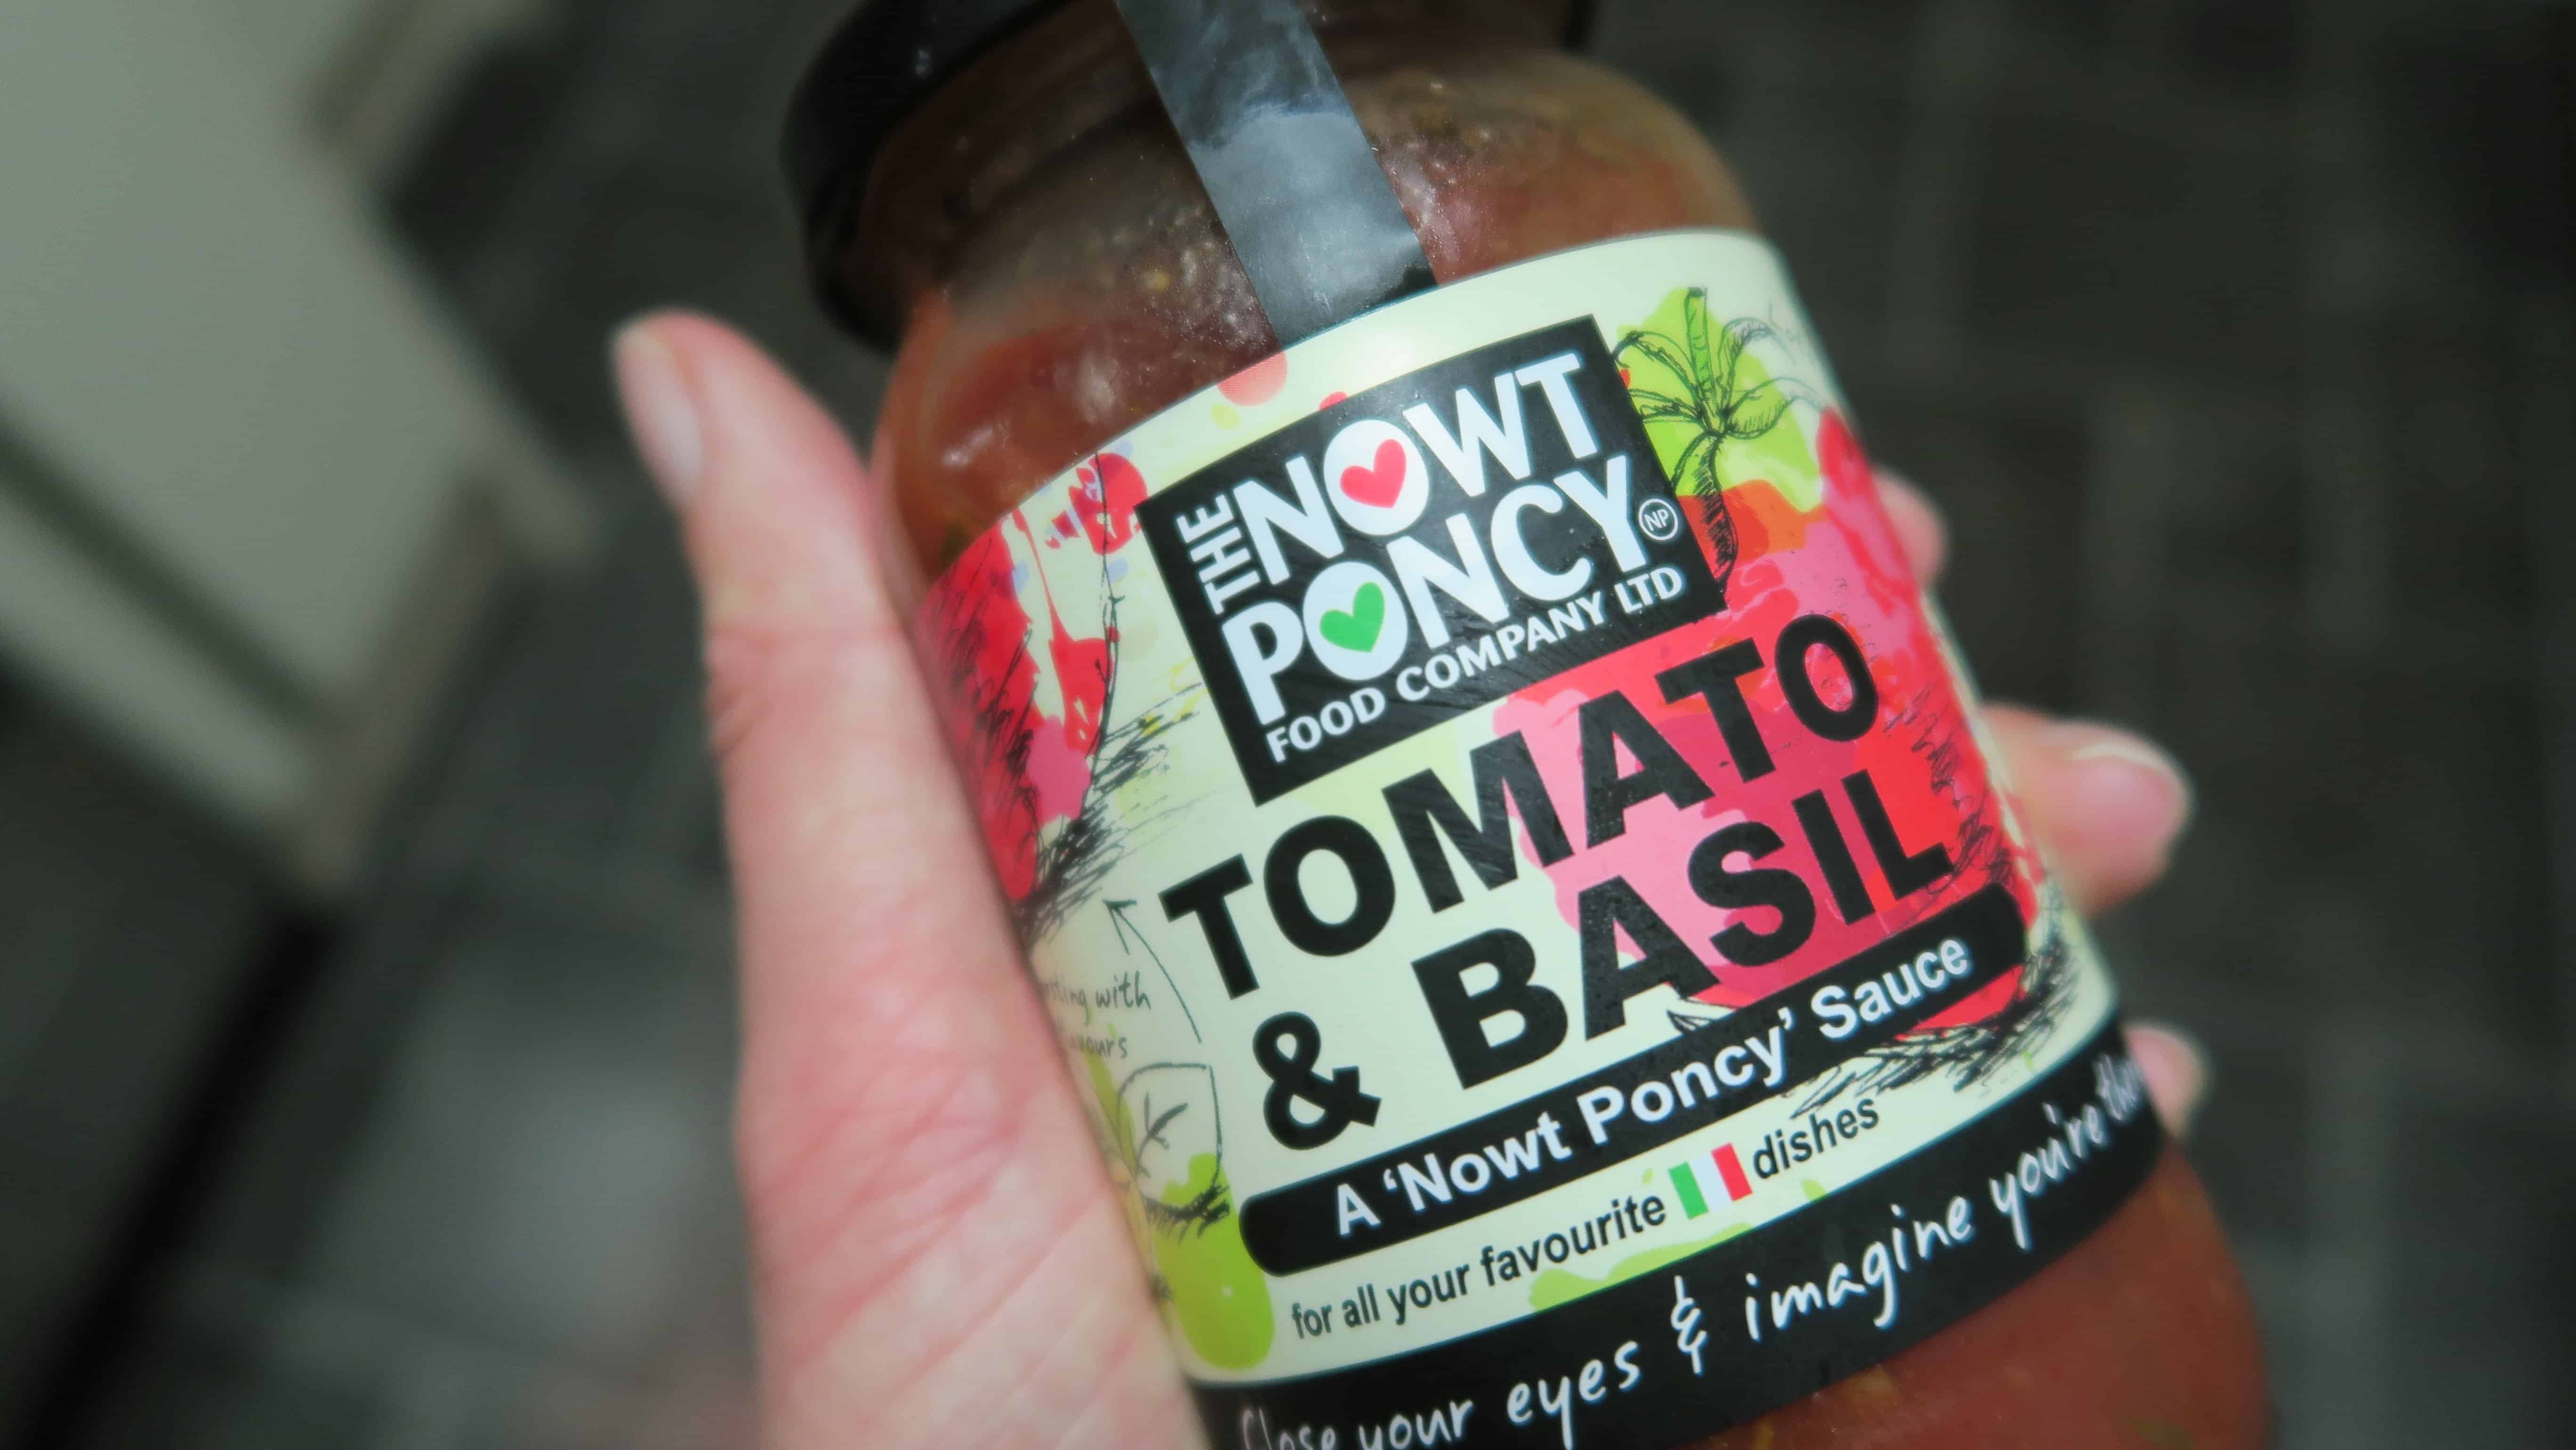 nowt-poncy-gluten-free-tomato-and-basil-pasta-sauce-1